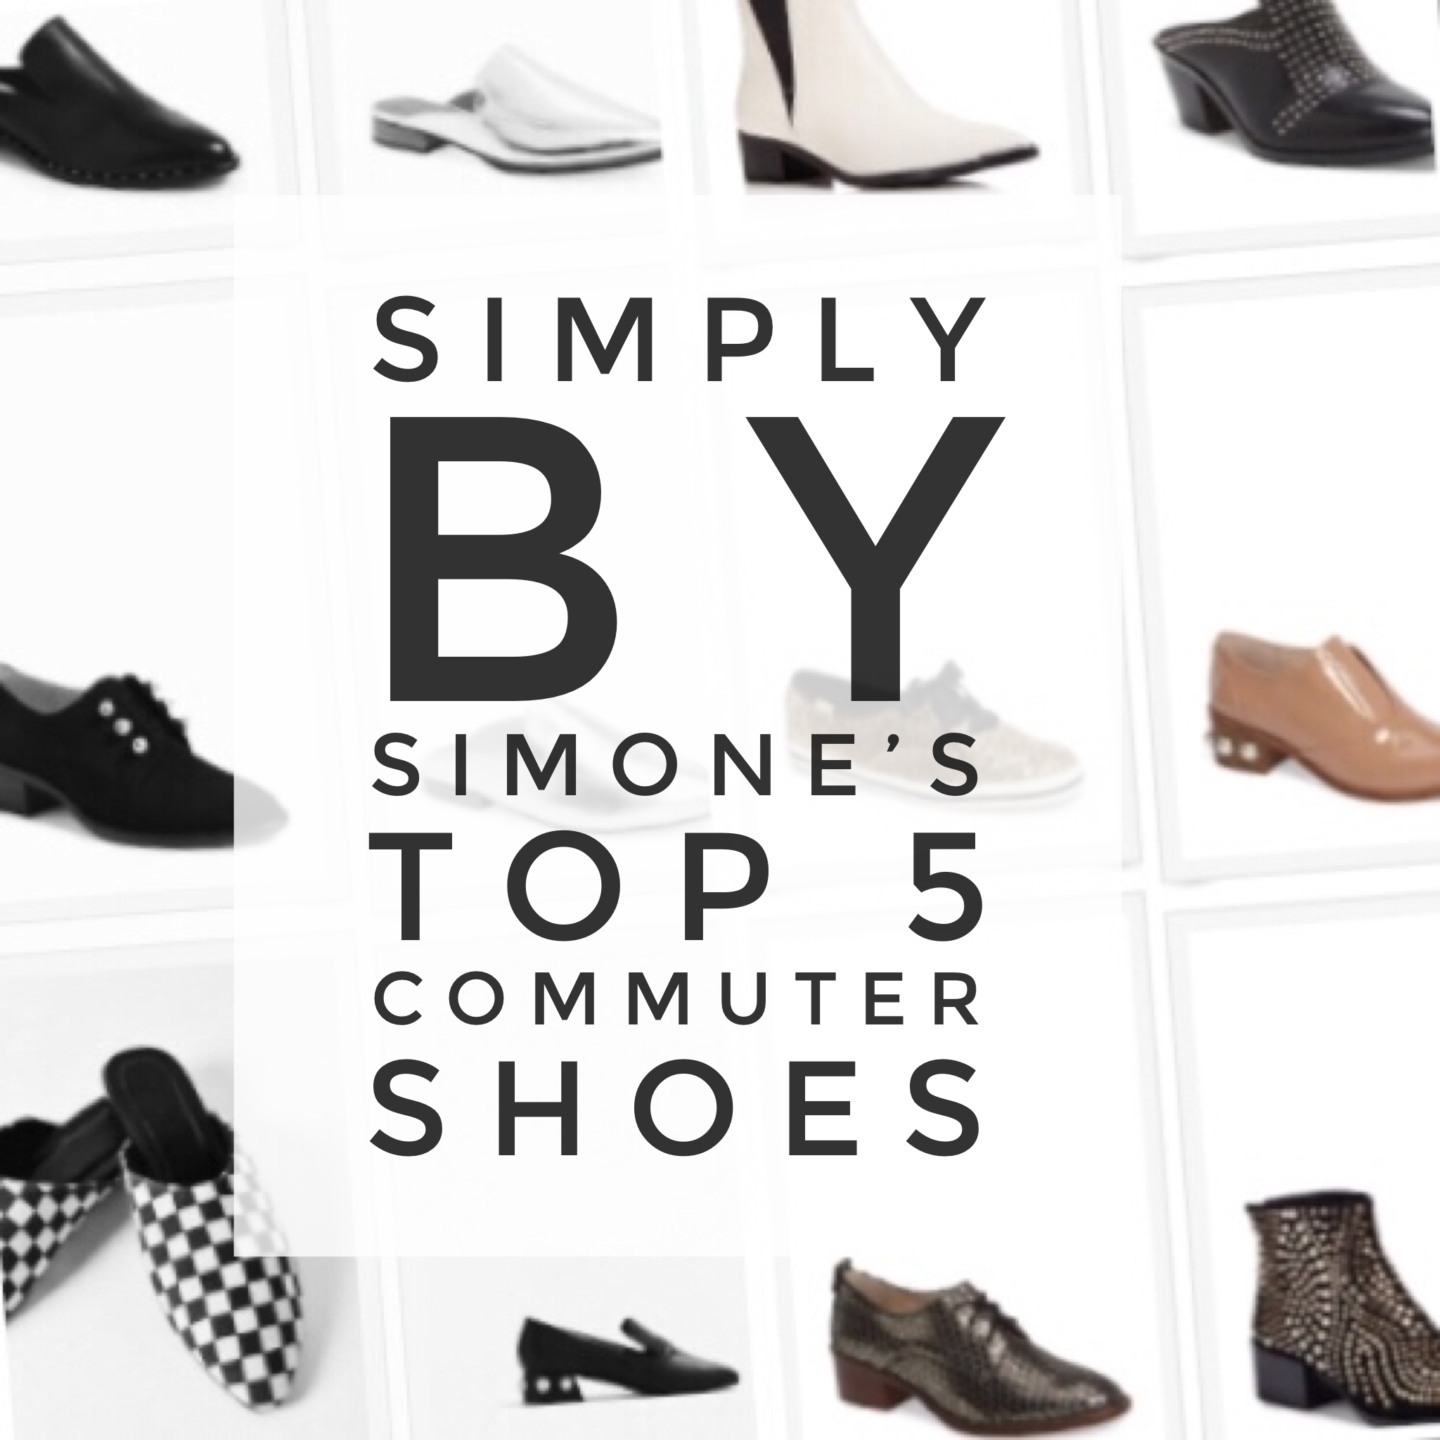 Top 5 Commuter Shoes That Won't Be Embarrassed To Wear